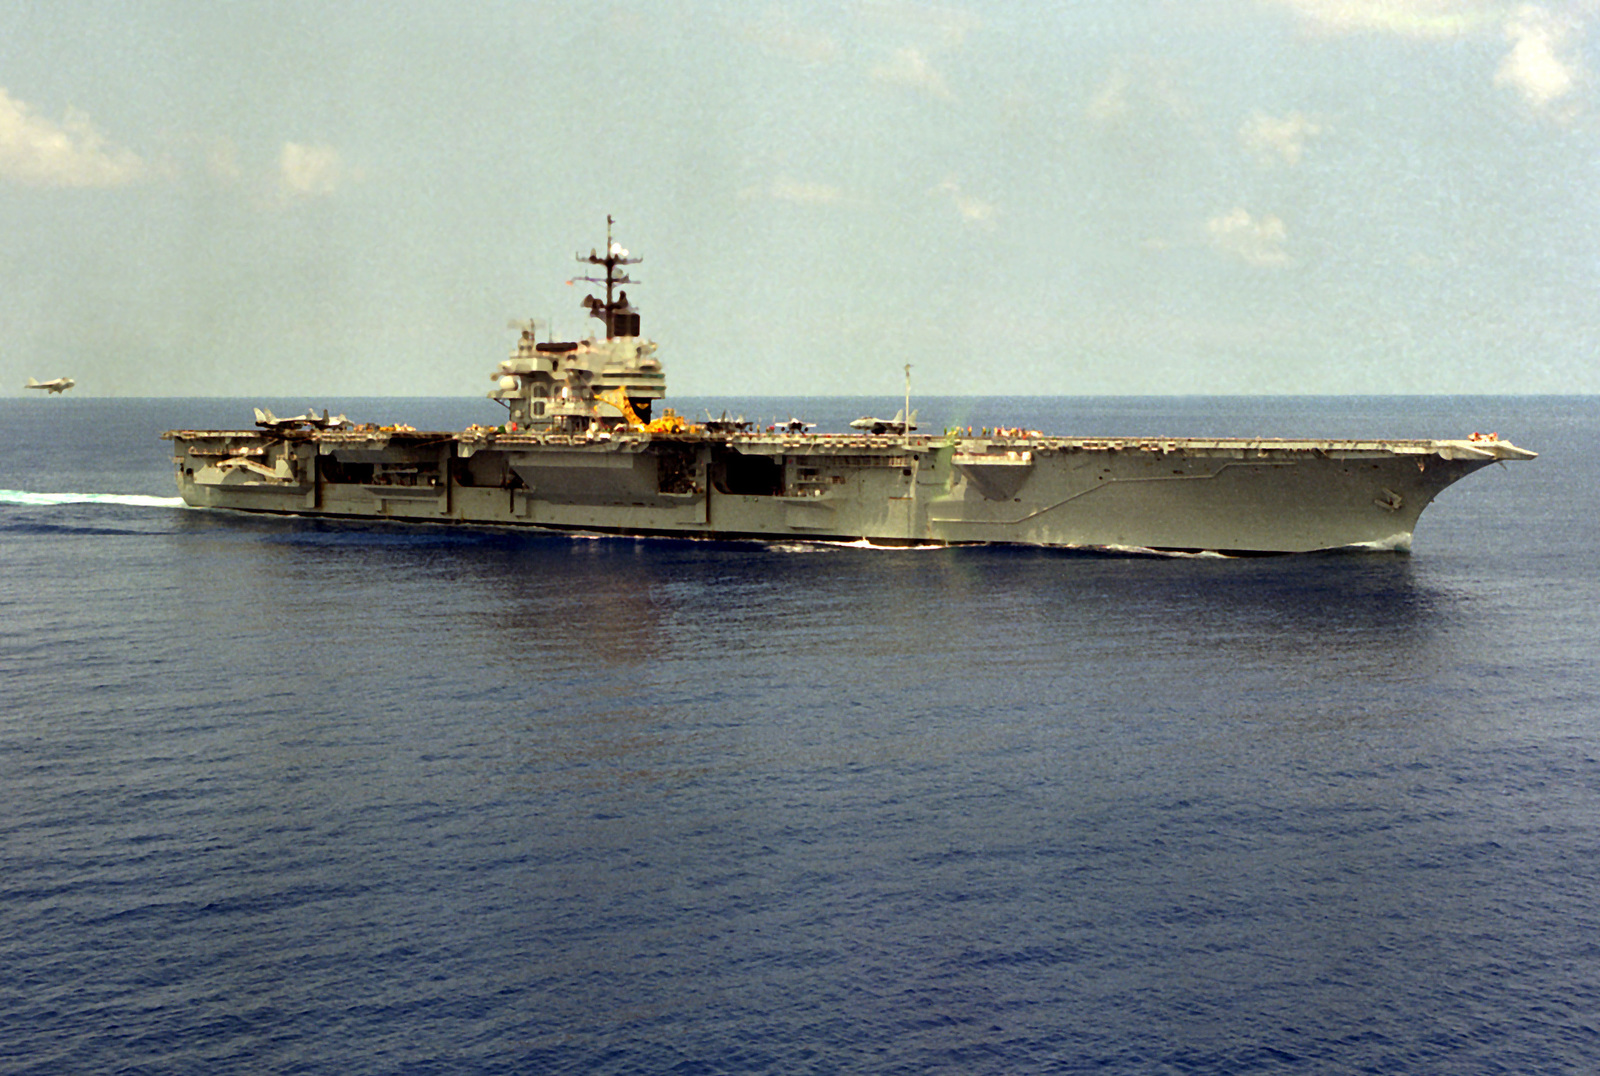 A starboard view of the aircraft carrier USS SARATOGA (CV-60) underway as an A-6E Intruder aircraft approaches for a landing